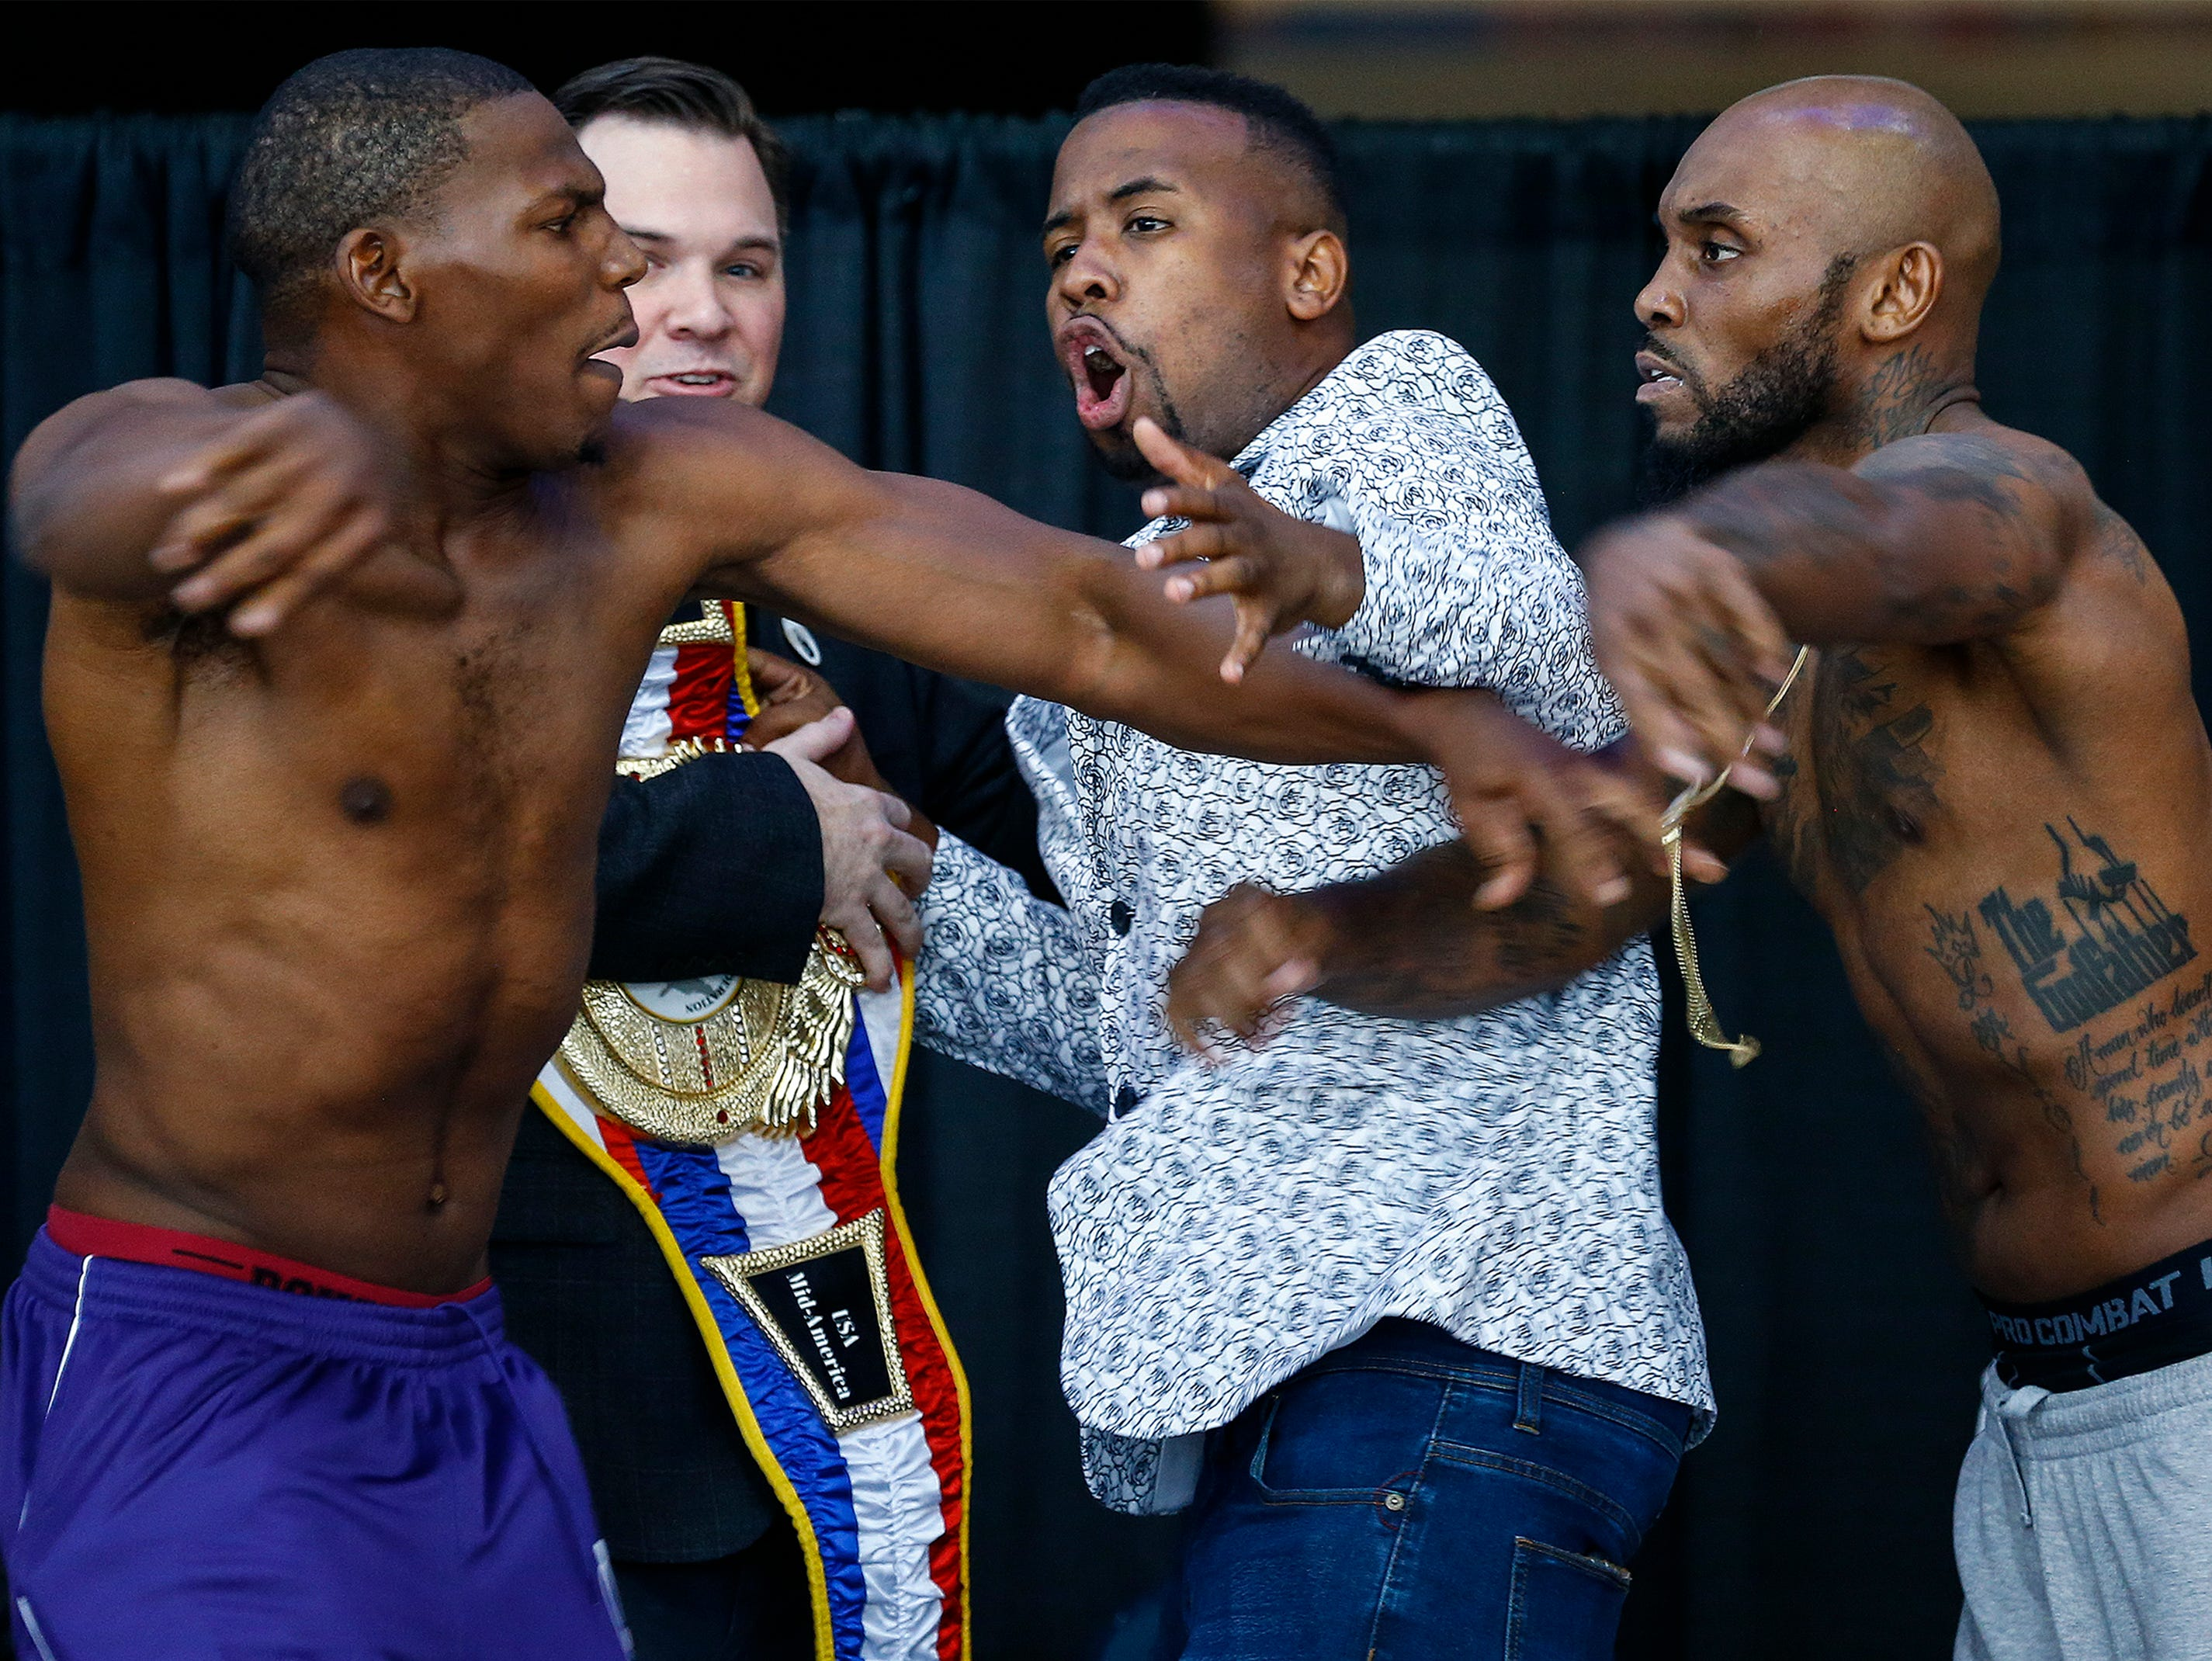 """Promoter Lank the King (middle) tries to hold back boxers Lamar Harris (left) and Lanell Bellows (right) after they get into an altercation while facing-off during weigh-ins for their bout on the """"Big Payback Championship Boxing FightÓ at the FedExFourm."""